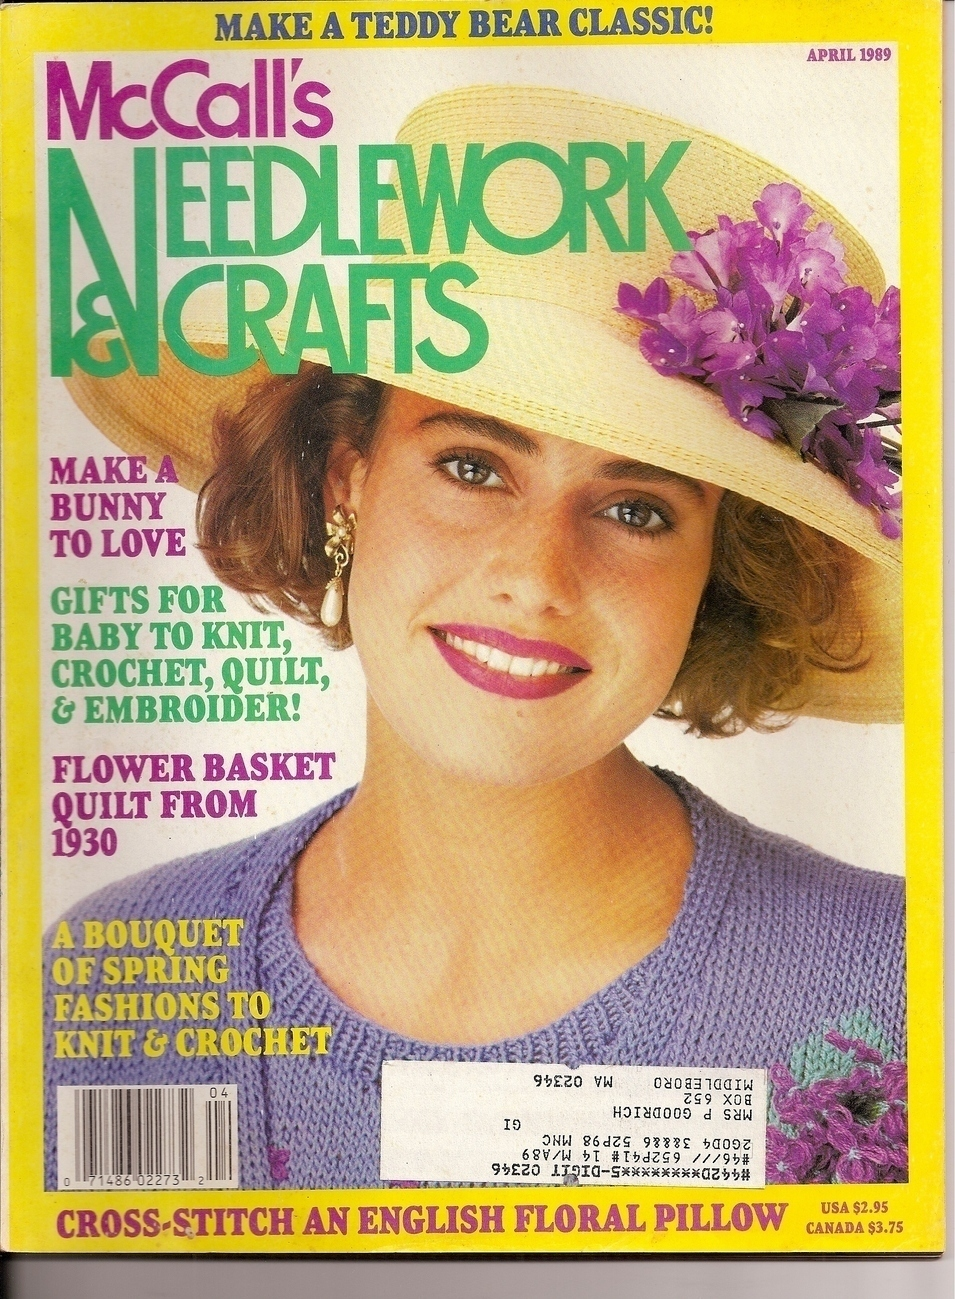 McCalls Needlework & Crafts Magazine April1989